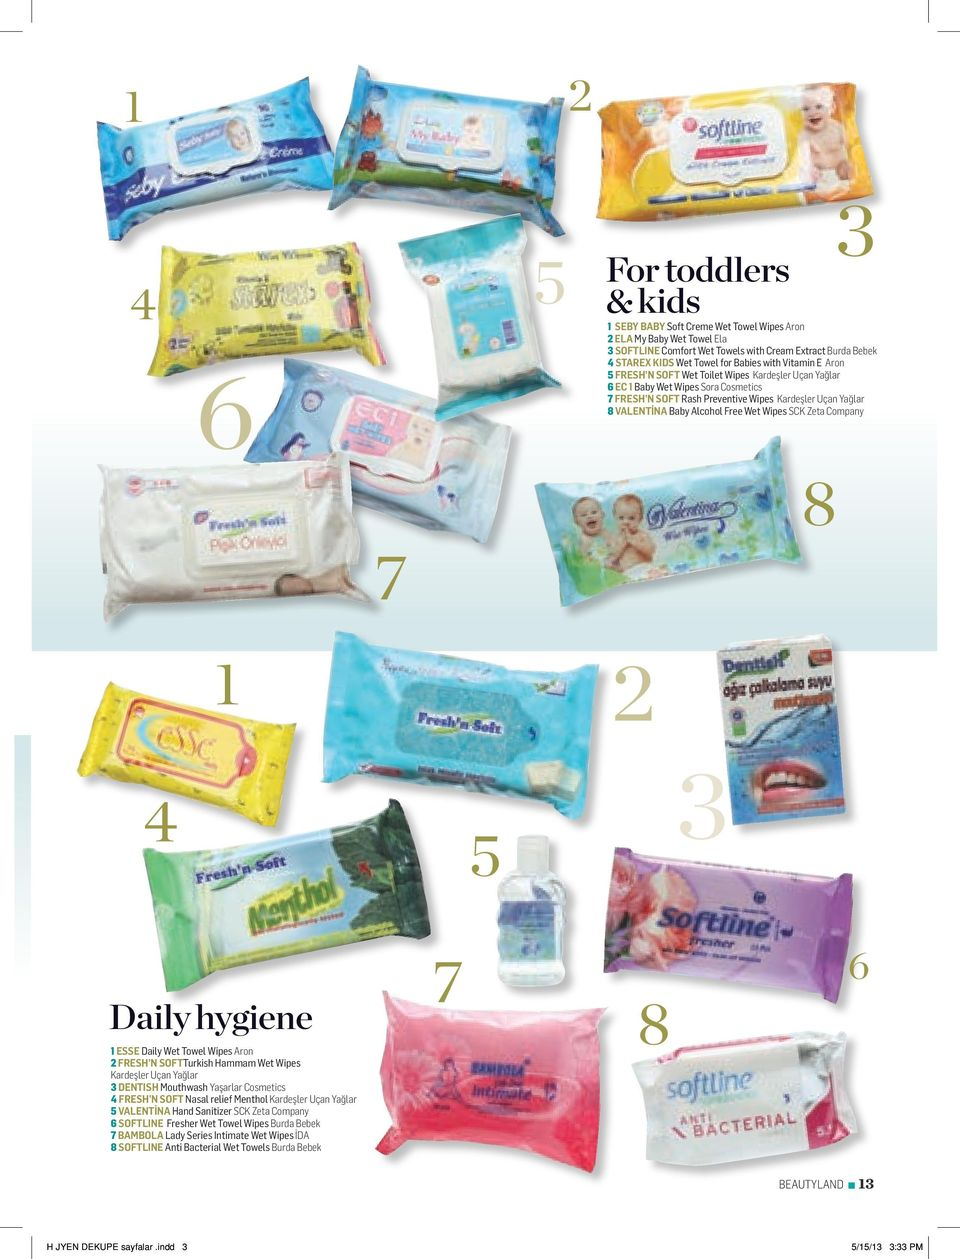 Wet Wipes SCK Zeta Company 8 7 1 2 4 5 3 Daily hygiene 1 ESSE Daily Wet Towel Wipes Aron 2 FRESH N SOFTTurkish Hammam Wet Wipes Kardeşler Uçan Yağlar 3 DENTISH Mouthwash Yaşarlar Cosmetics 4 FRESH N